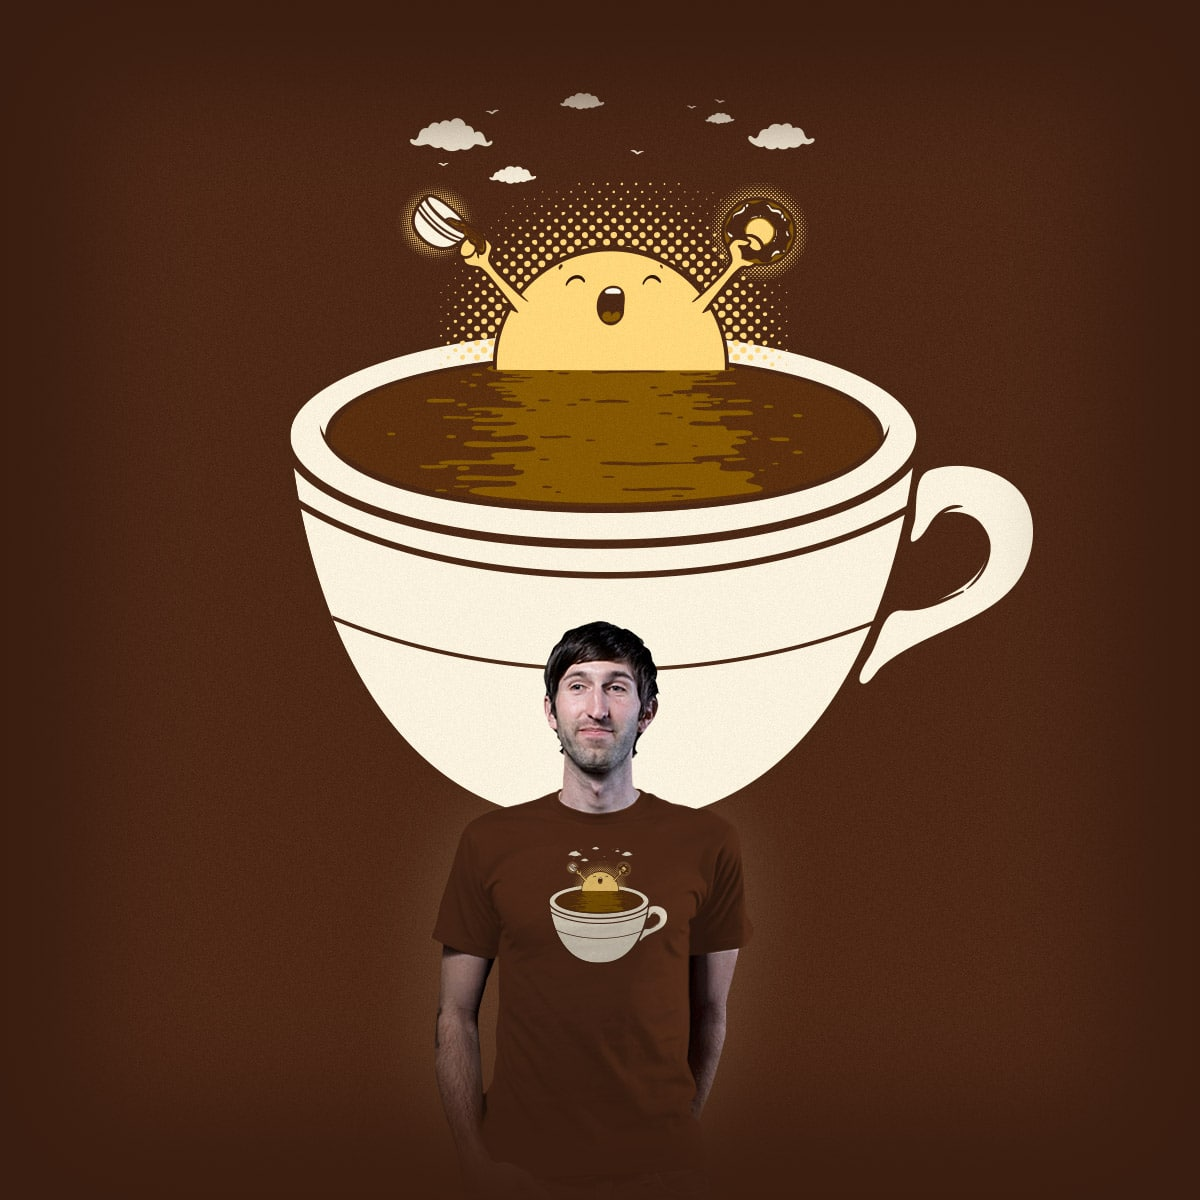 Wake Cup by Robo Rat on Threadless